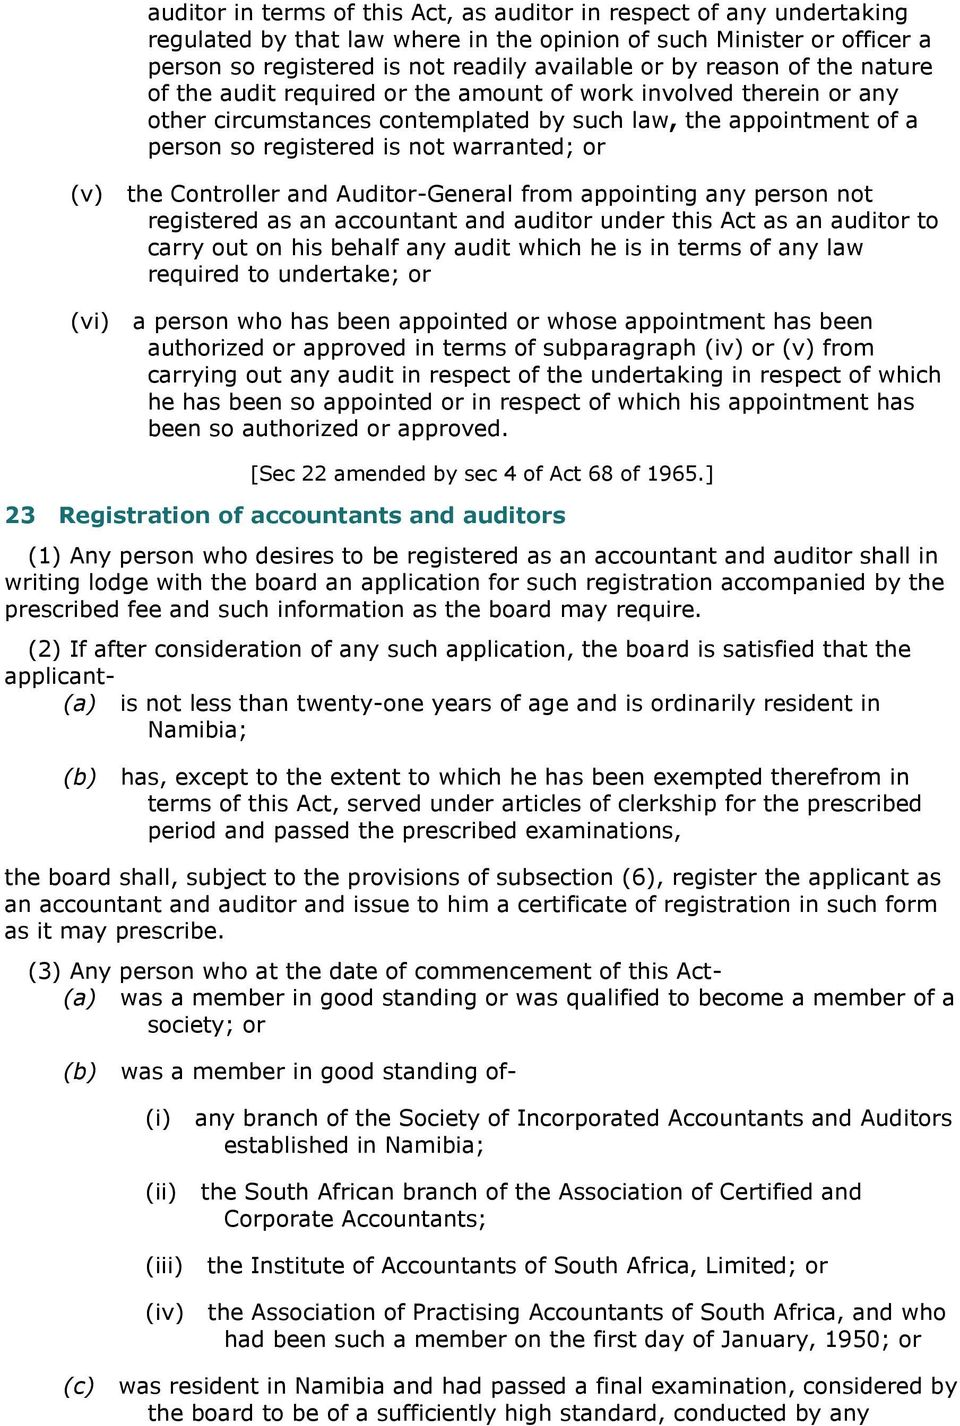 (v) the Controller and Auditor-General from appointing any person not registered as an accountant and auditor under this Act as an auditor to carry out on his behalf any audit which he is in terms of